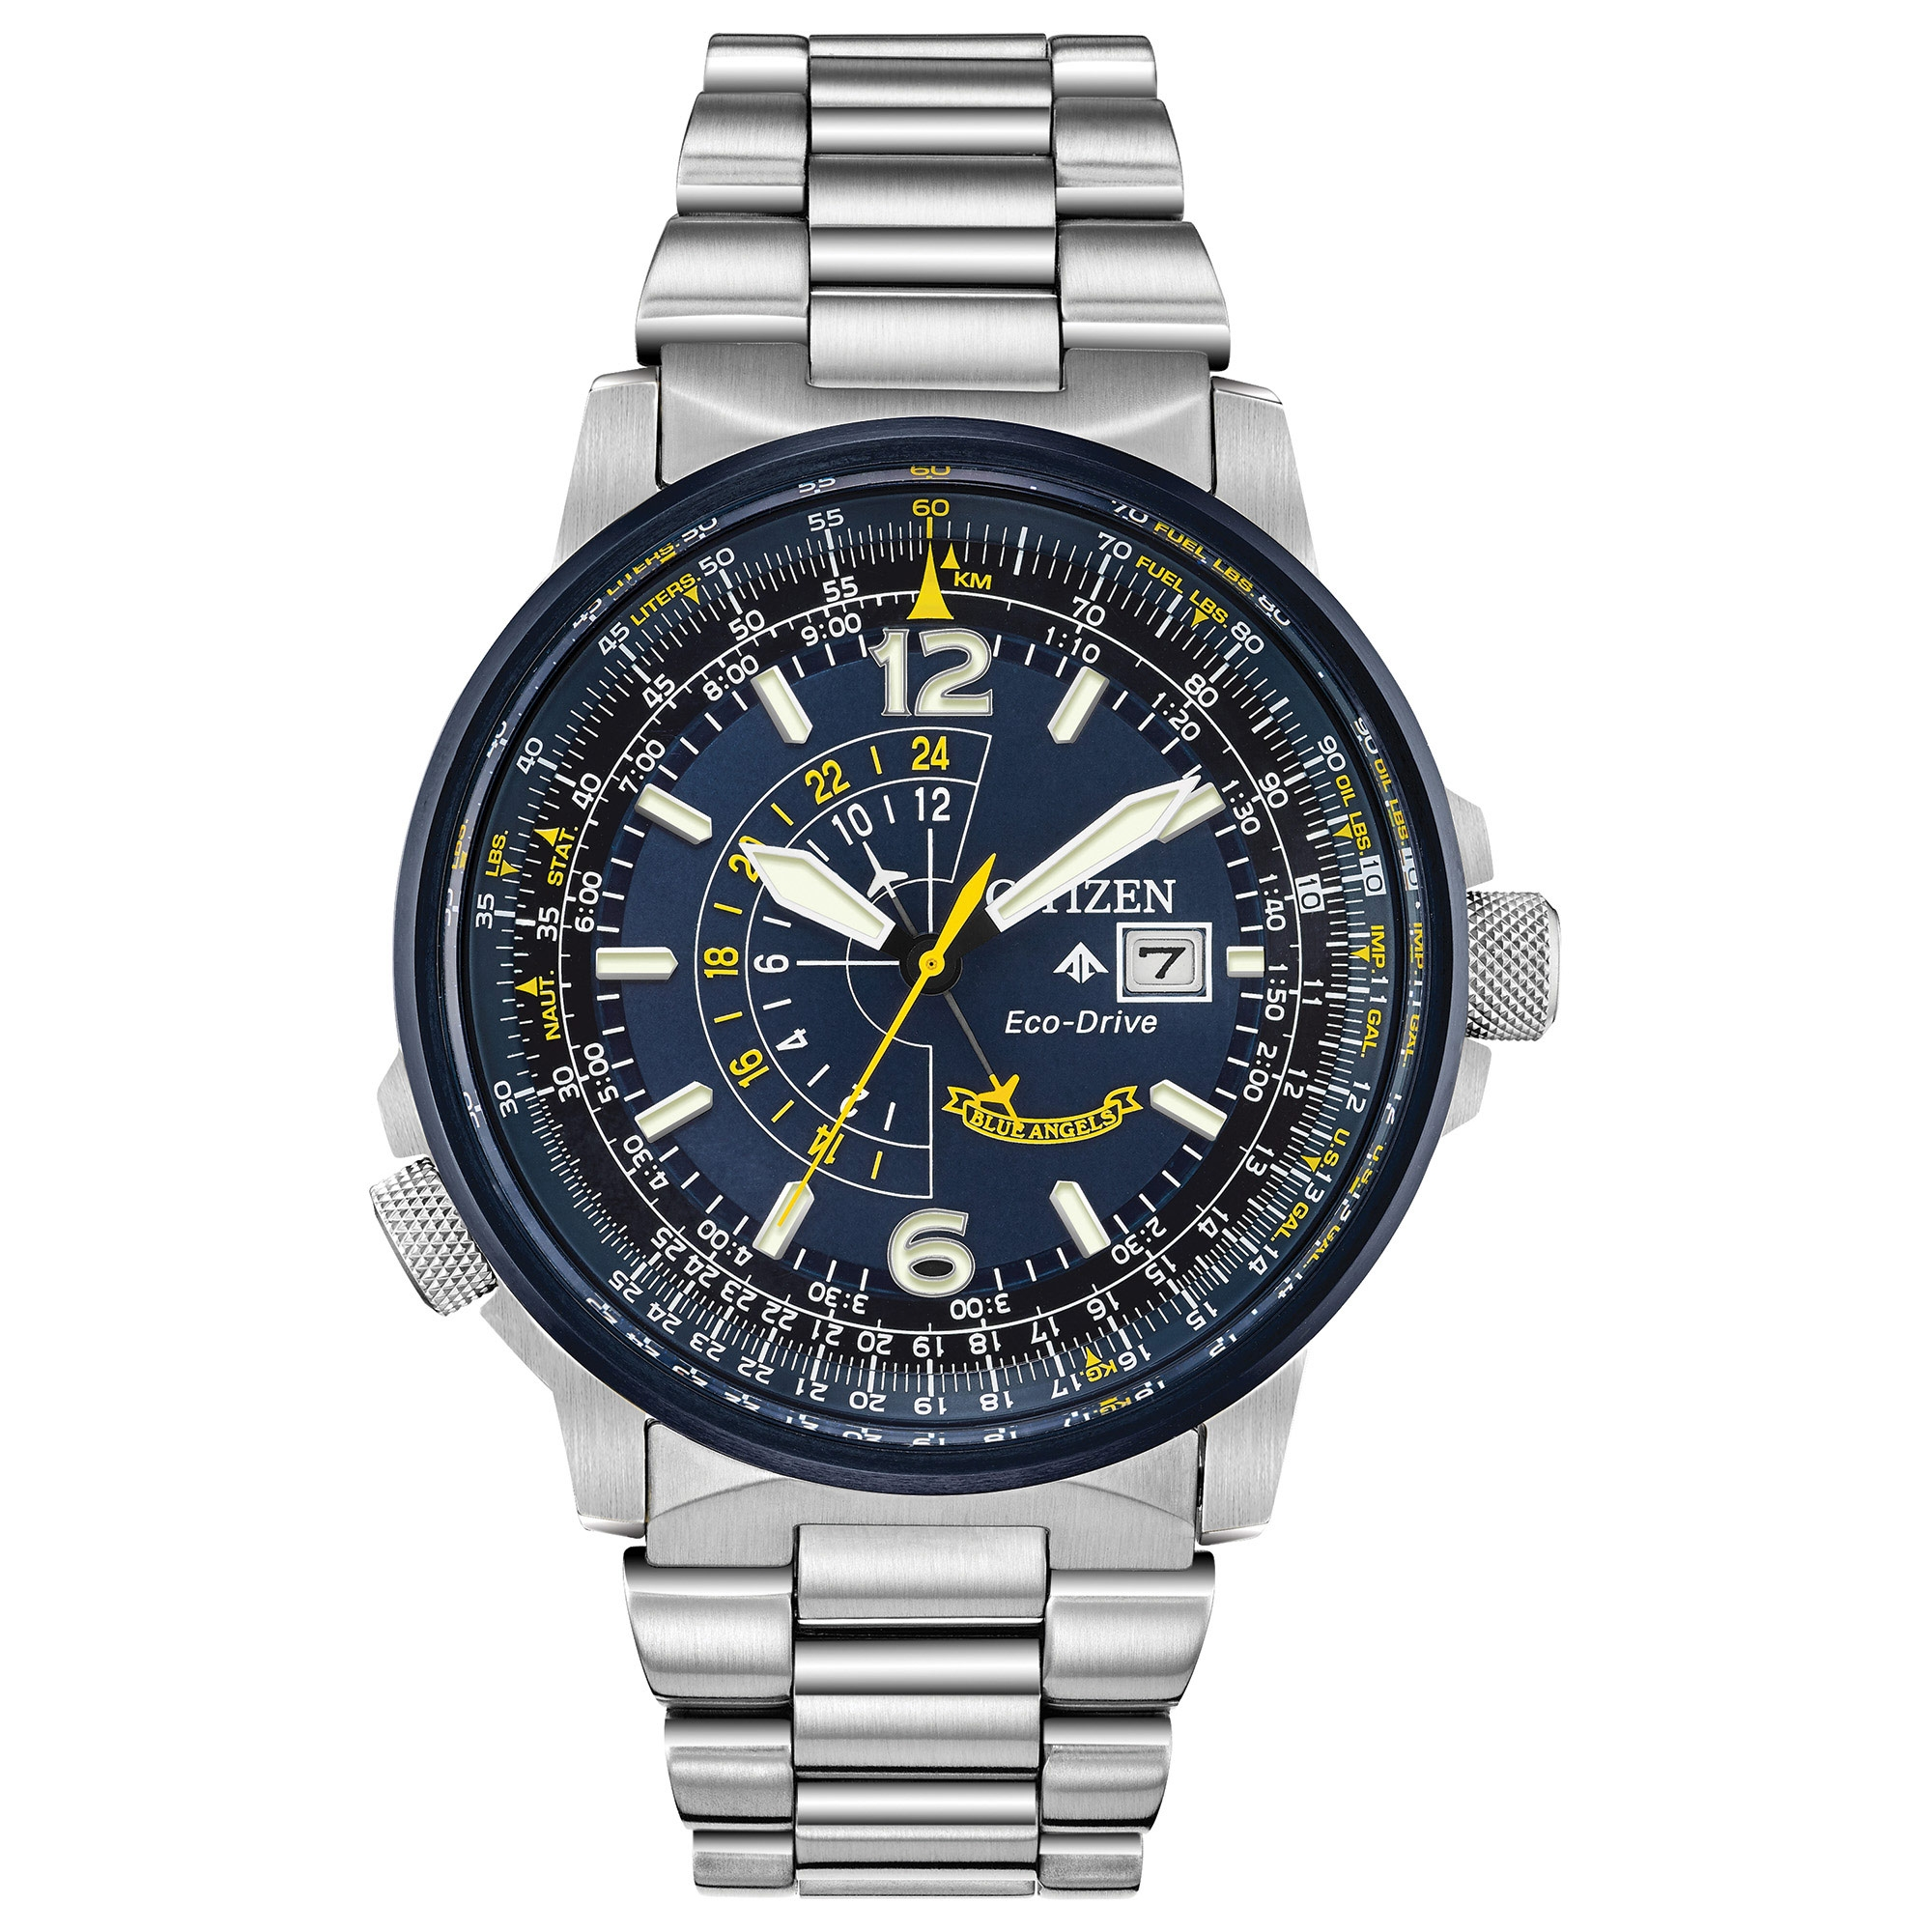 BJ7006-56L Citizen Promaster Nighthawk Eco-Drive Mens Watch